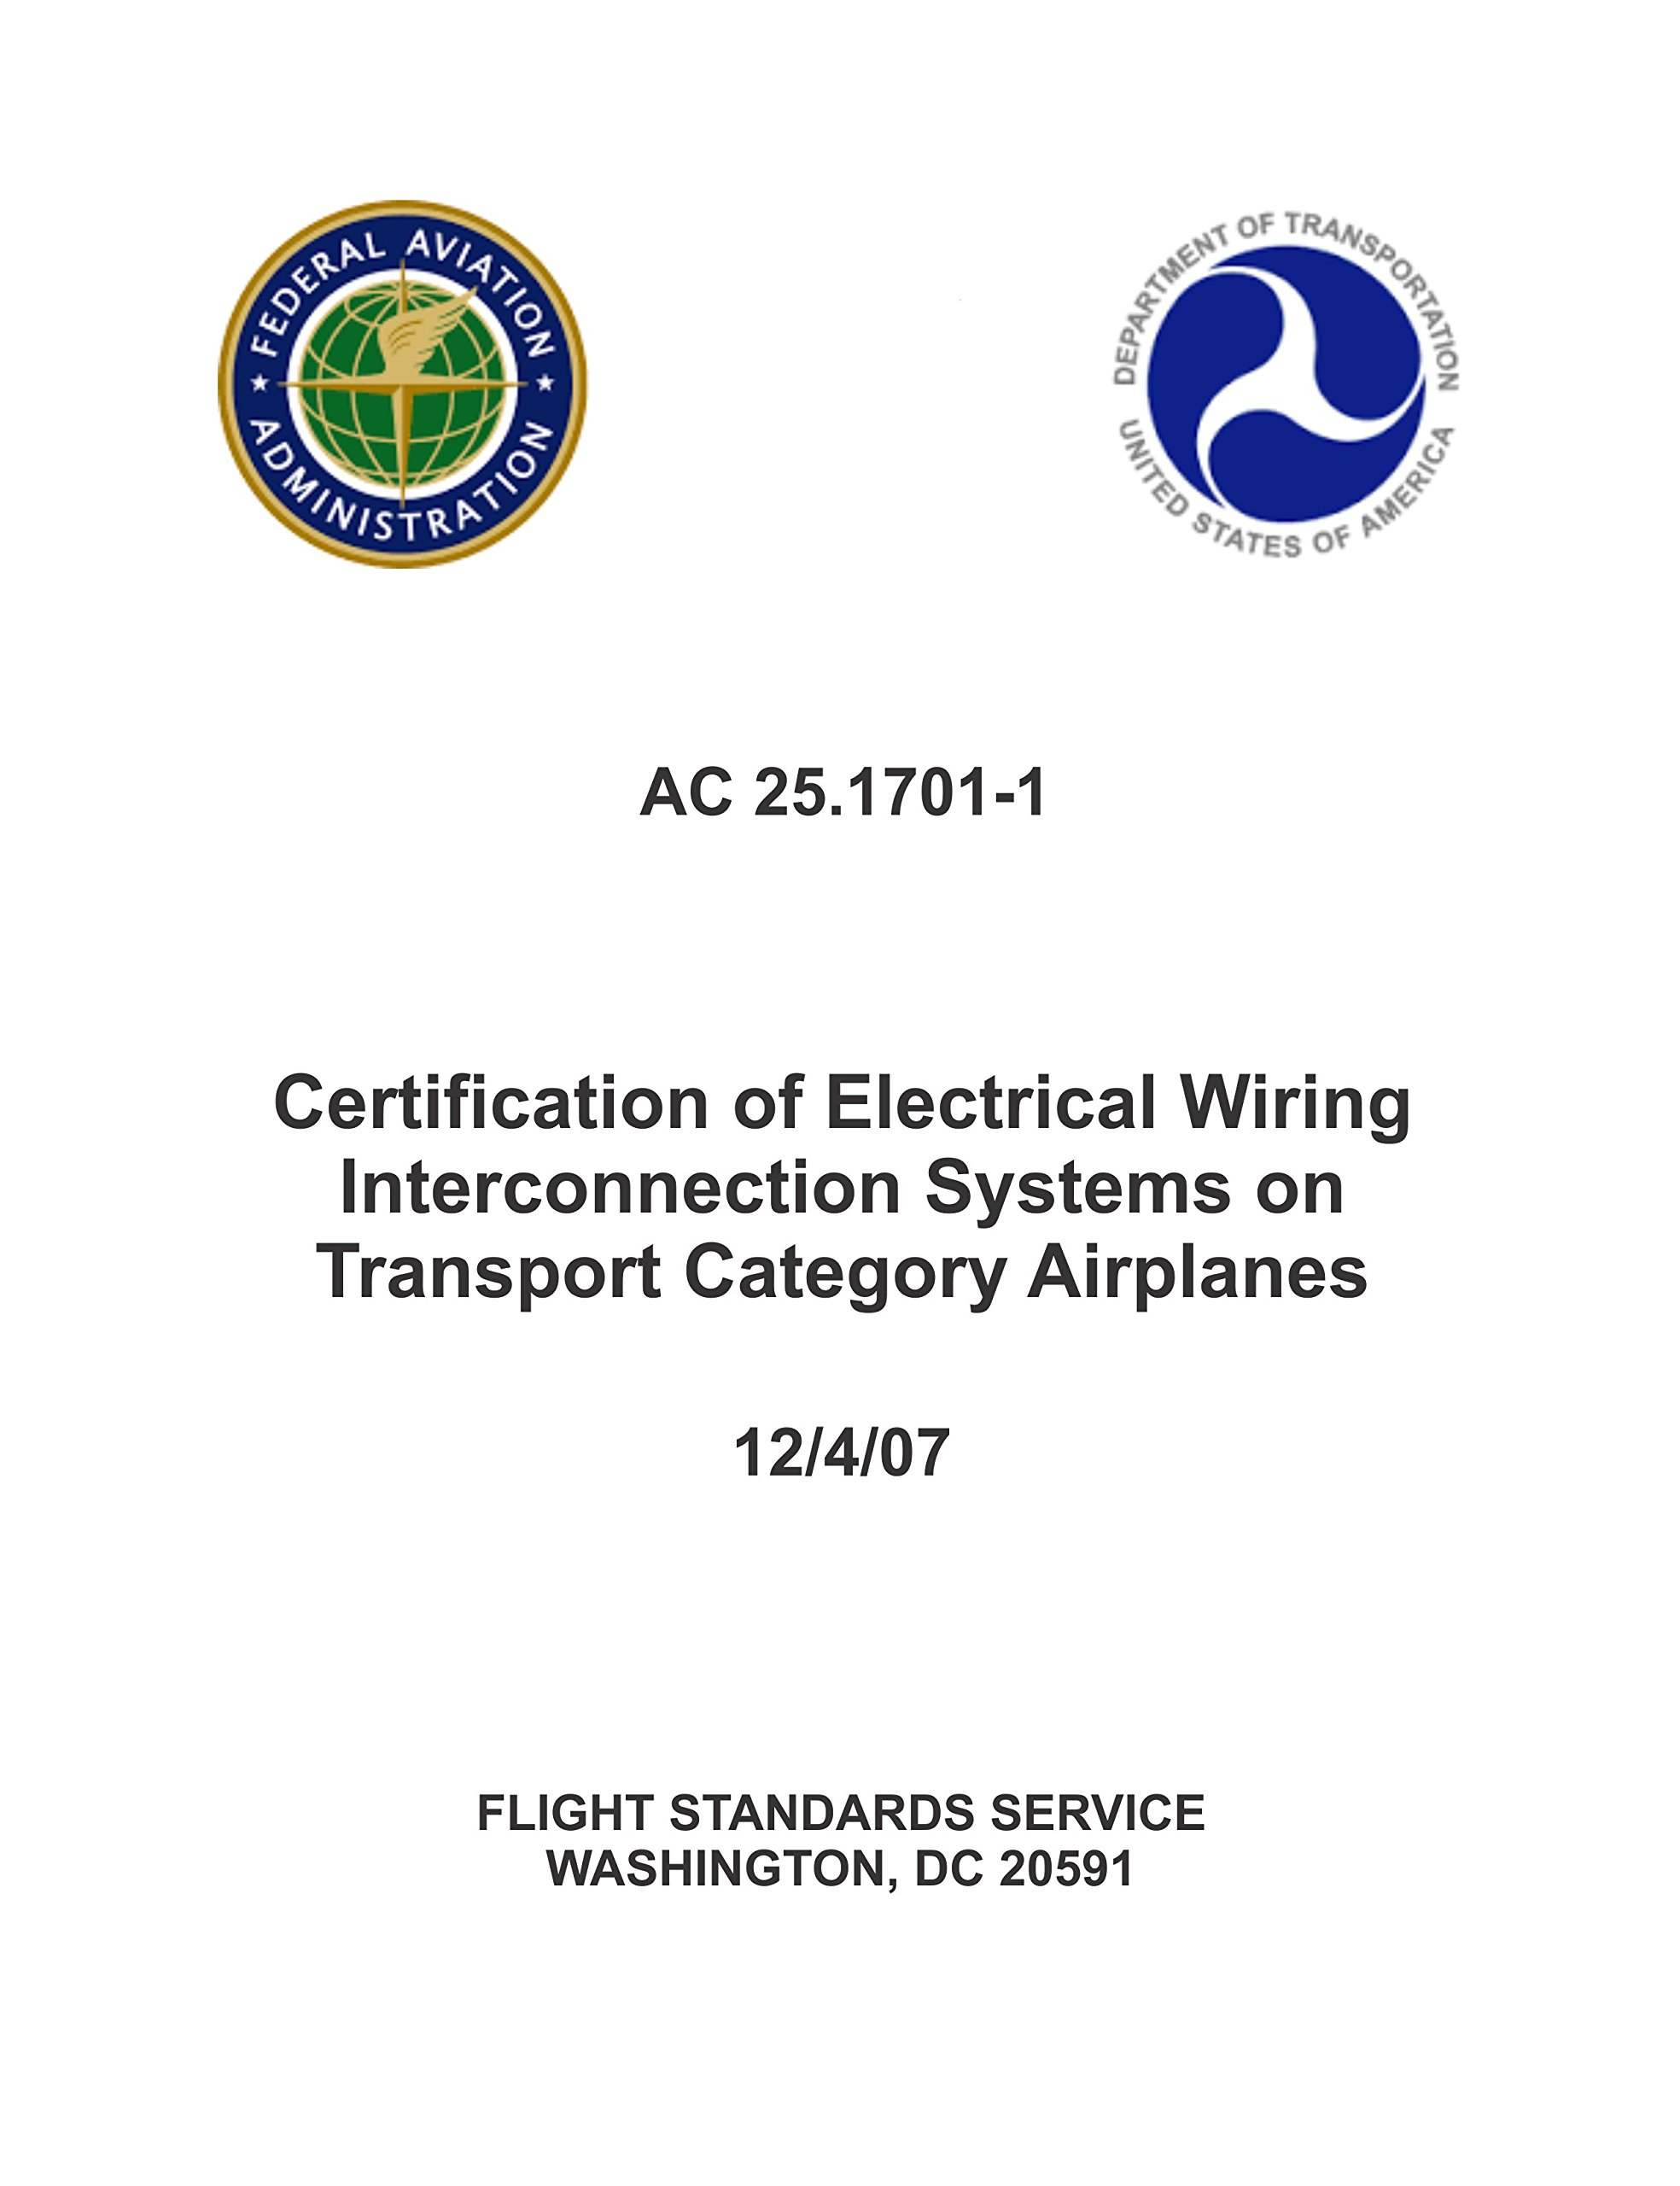 AC_25_1701-1 Certification of Electrical Wiring Interconnection Systems on Transport Category Airplanes [Loose Leaf] PDF